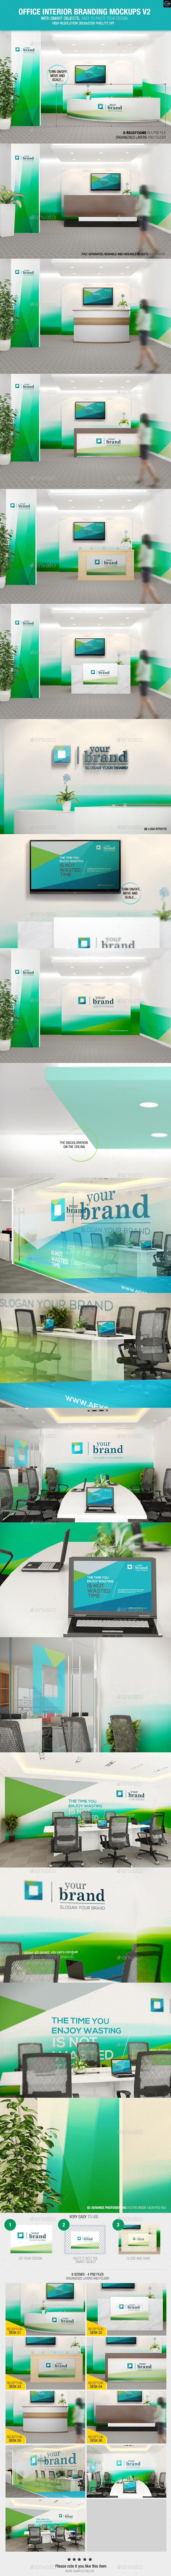 GraphicRiver Office Interior Branding Mockups V2 10916425